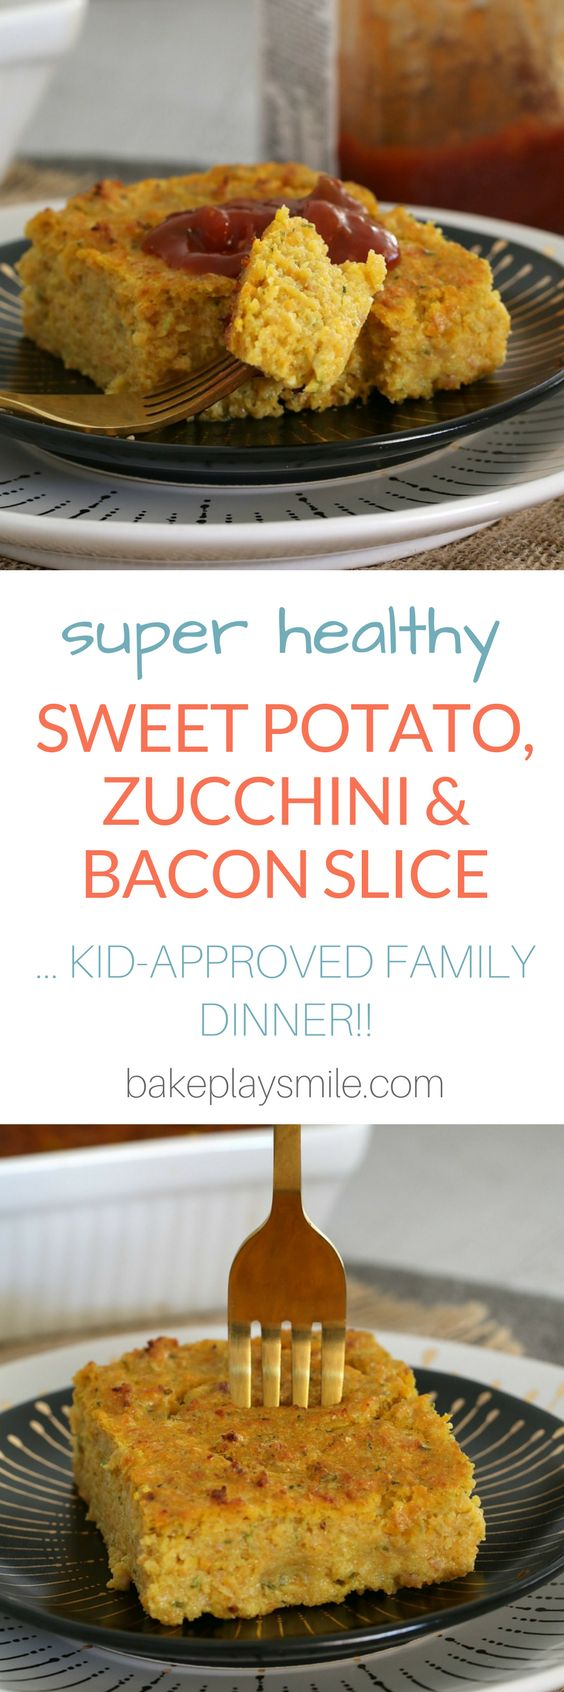 The most delicious and HEALTHY SWEET POTATO, ZUCCHINI & BACON SLICE! This freezer-friendly slice is perfect for the whole family! #vegetable #slice #healthy #family #kids #recipes #toddlers #thermomix #conventional #easy #dinner #lunchbox